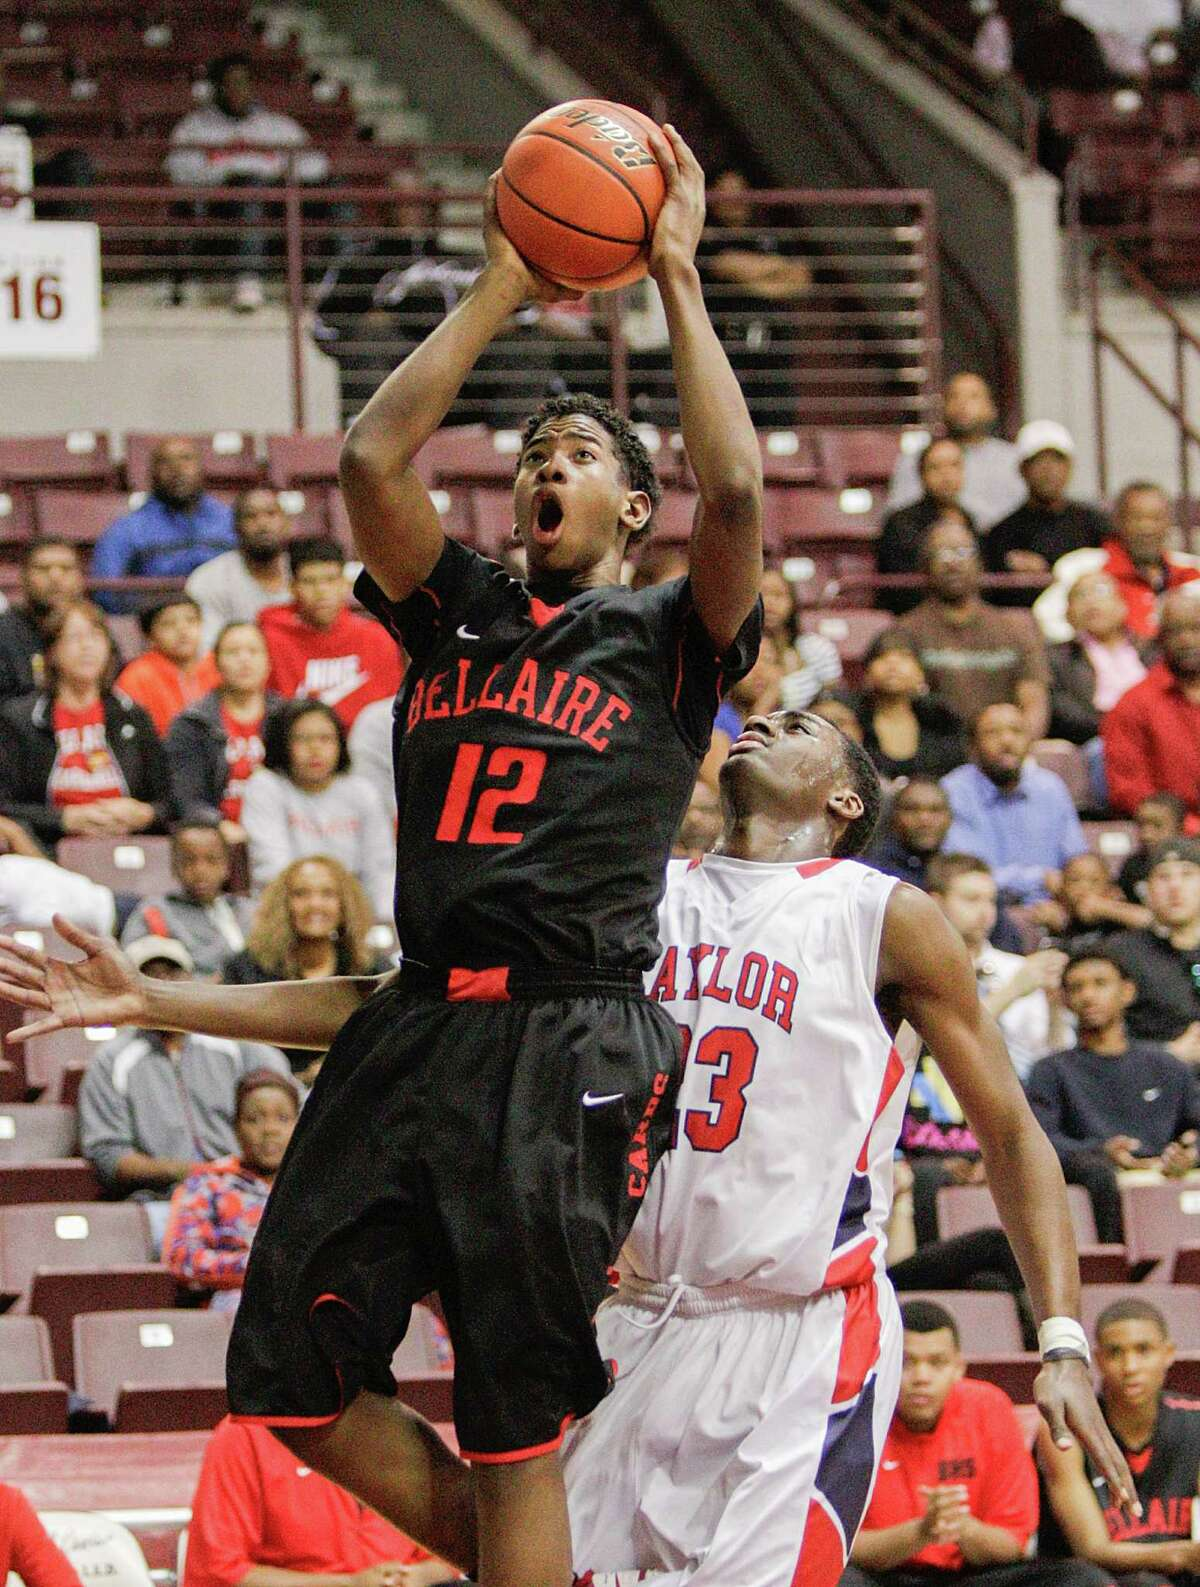 Bellaire's Christian James shoots past Alief Taylor's Keenen Brown #23 during a Class 5A Region III quarterfinal basketball game Tuesday, February 26, 2013 at the M.O. Campbell Center in Houston. (Bob Levey/For The Houston Chronicle)